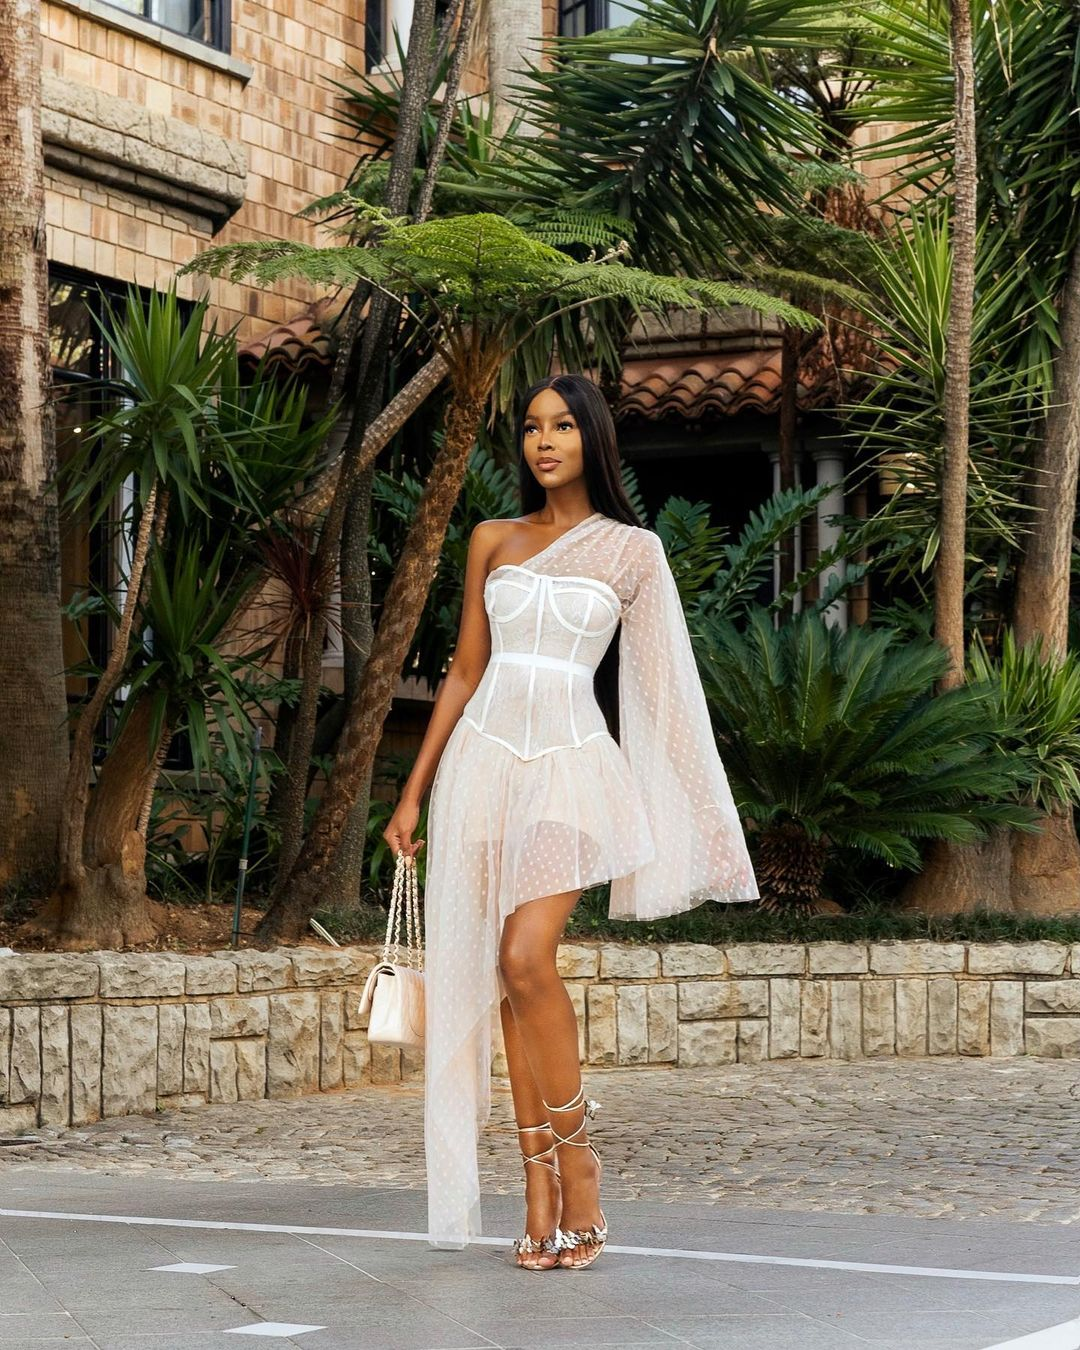 african-celebrity-fashion-news-2021-best-dressed-style-stars